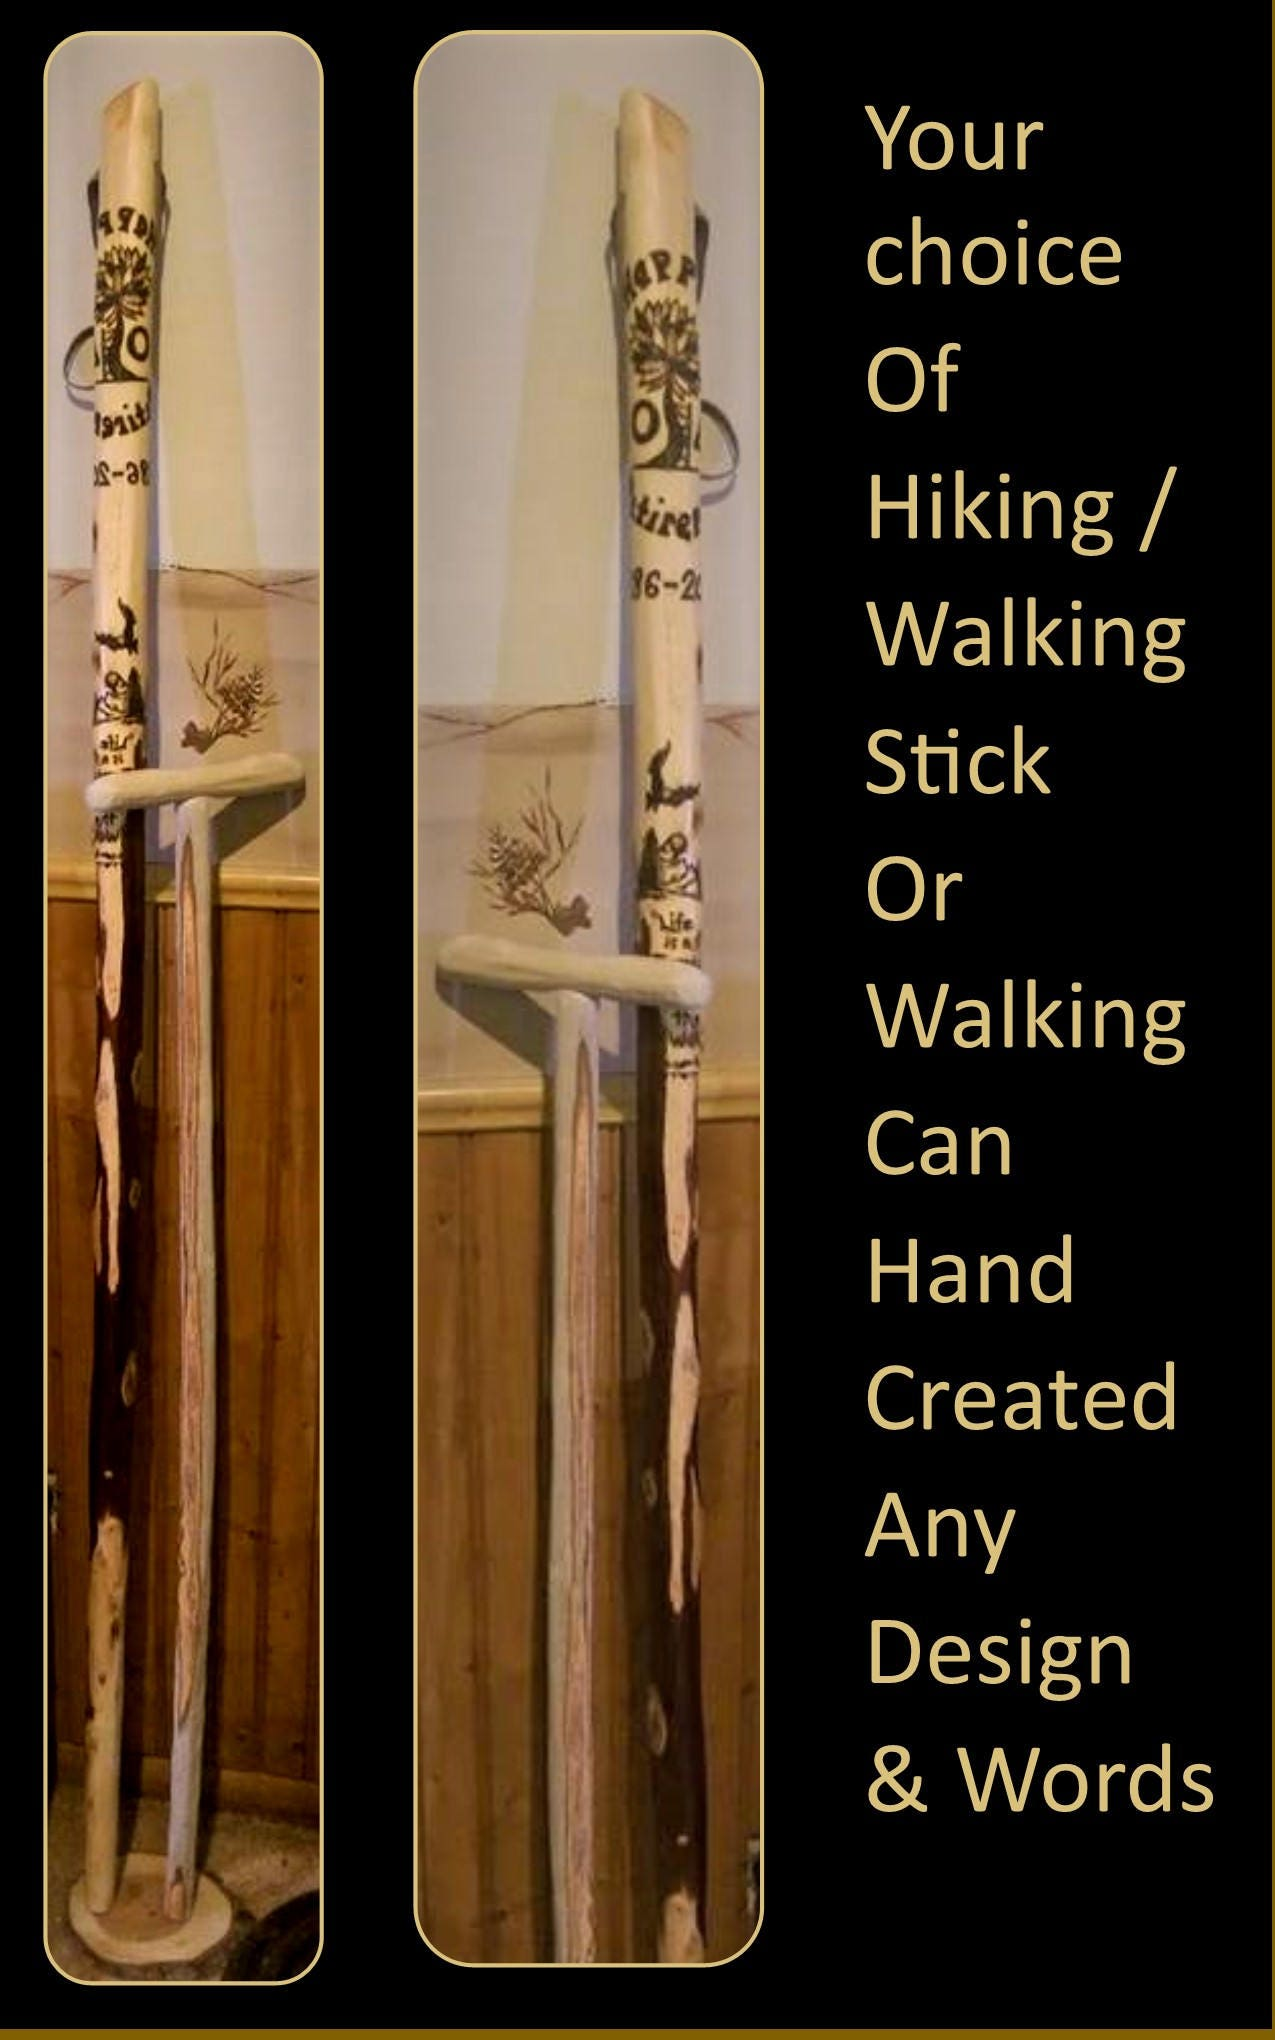 Couples gifthusband gifthiking stickwalking stickhikers gift 1 biocorpaavc Image collections